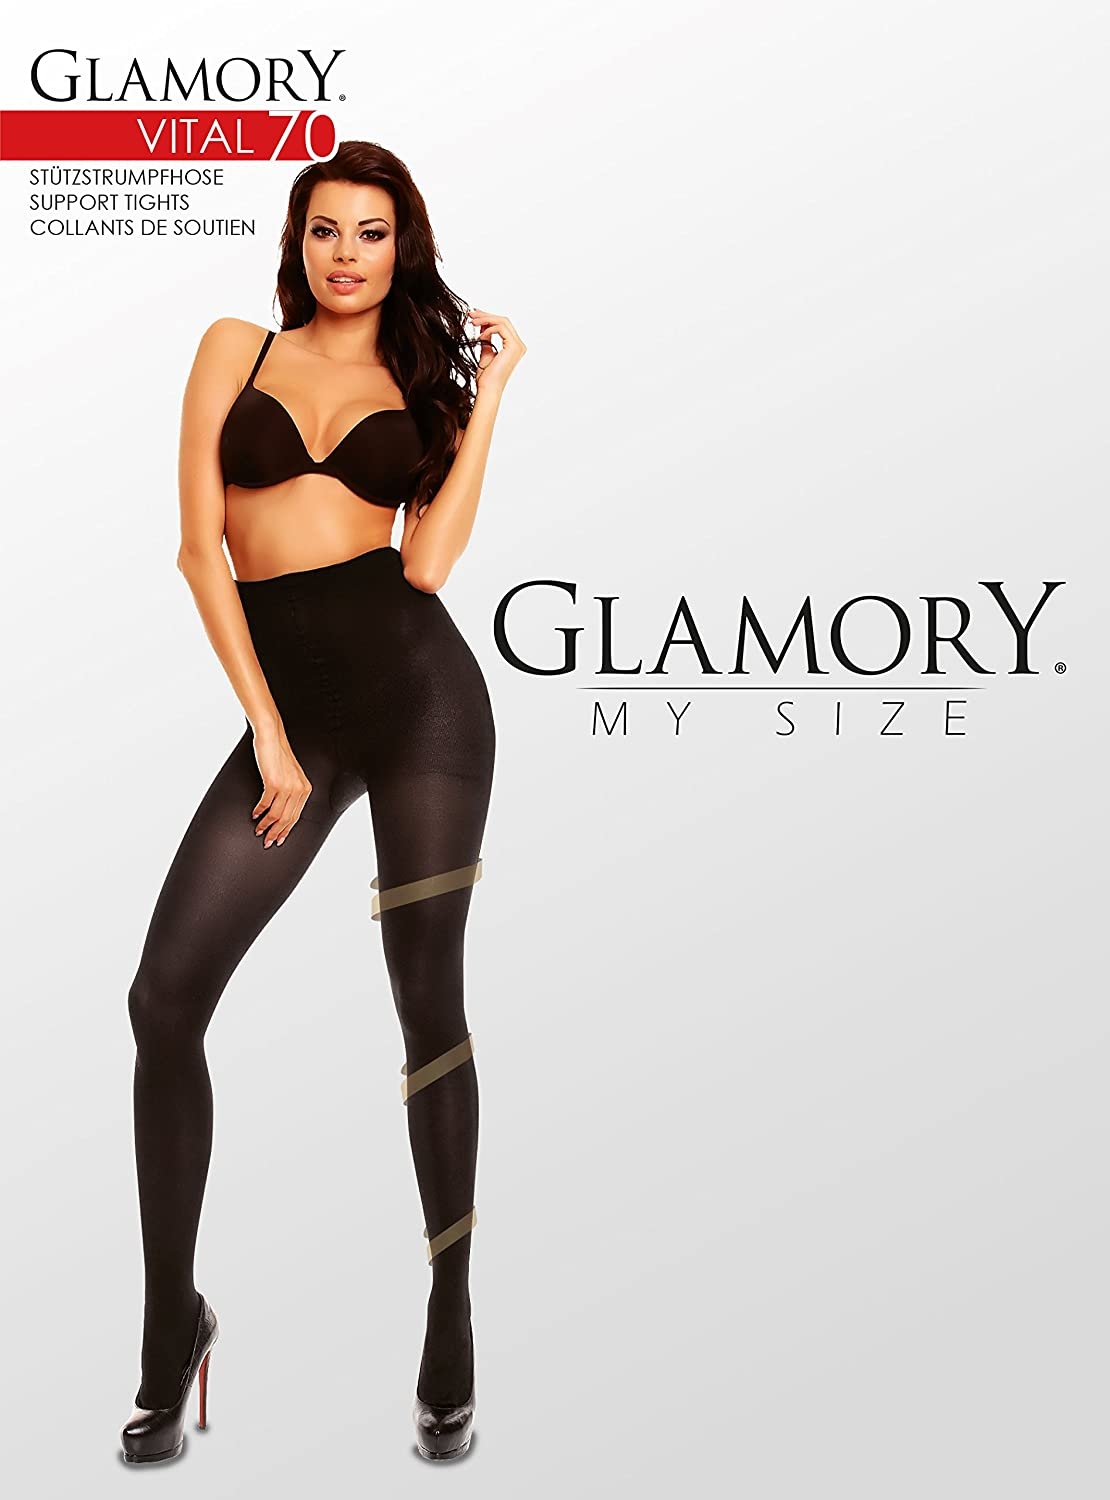 5e57cc6af5ea8 GLAMORY Vital 70 Support Tights plus Size-black-3XL-(26-28) at Amazon  Women's Clothing store: